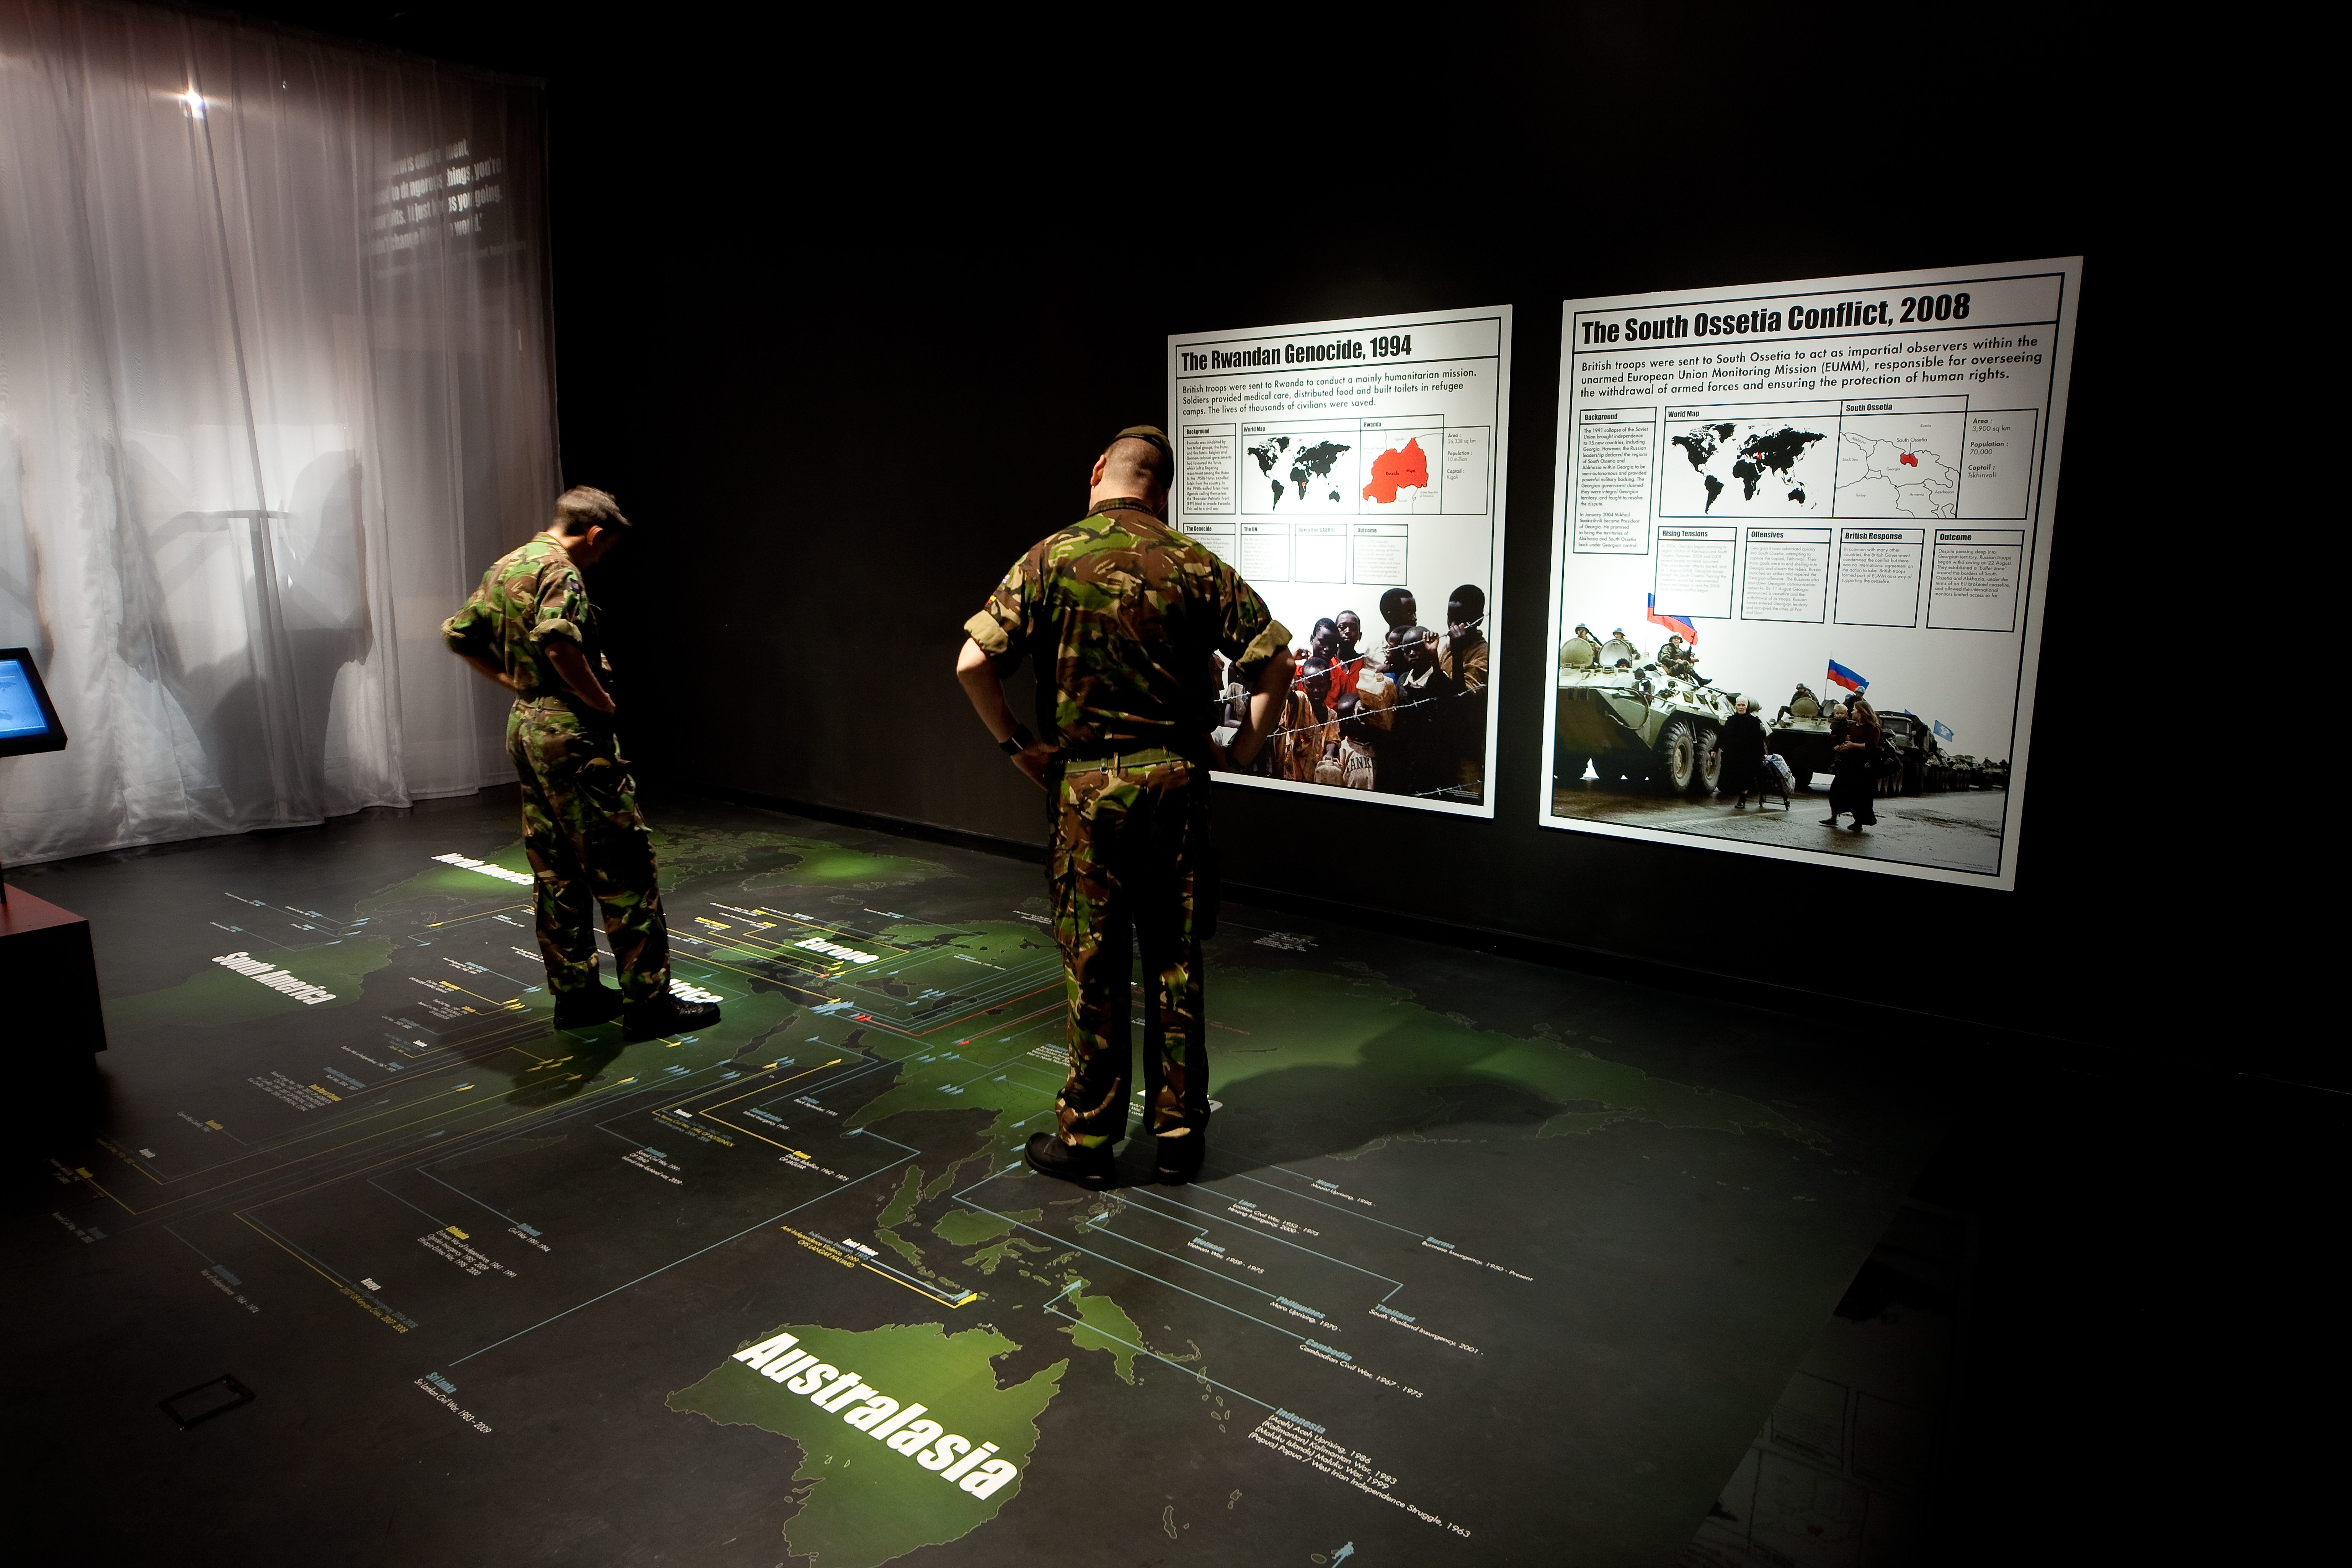 48 - Soldiers looking at conflicts map